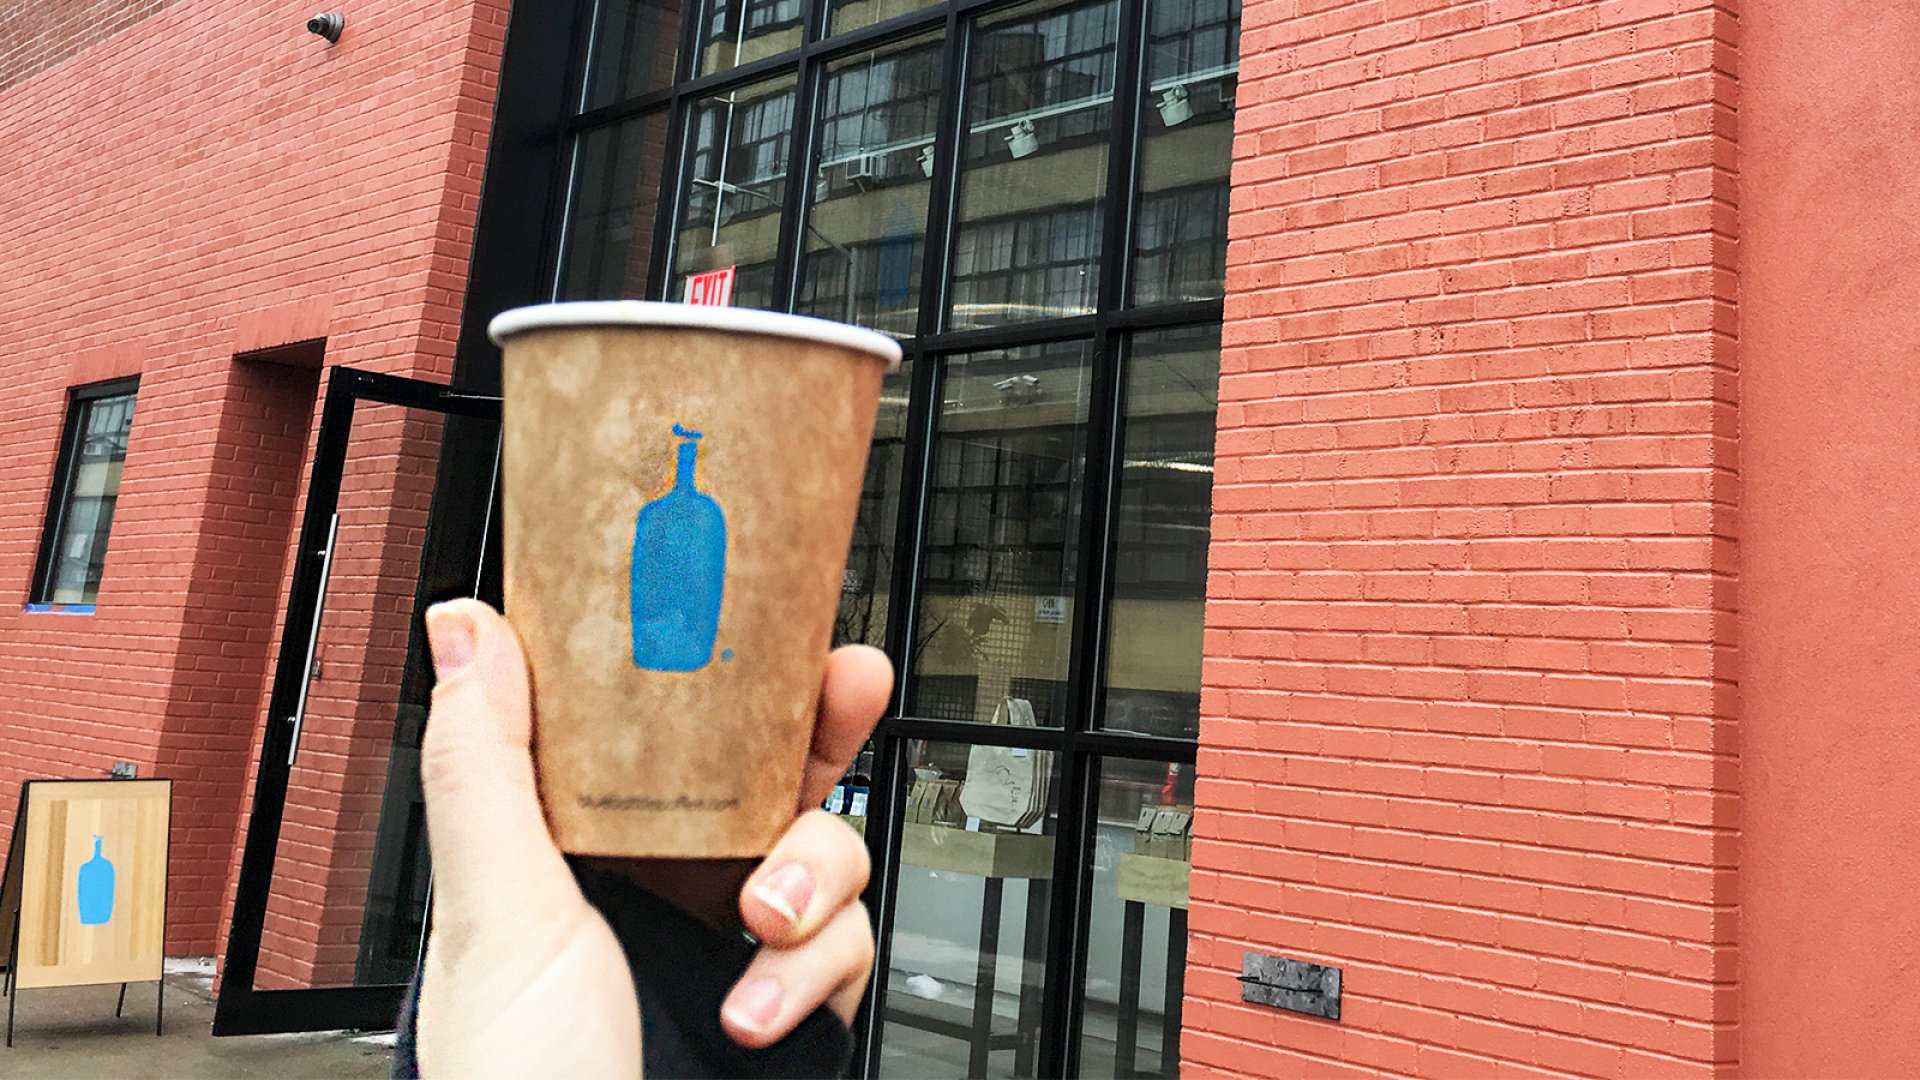 Blue Bottle Bushwick.